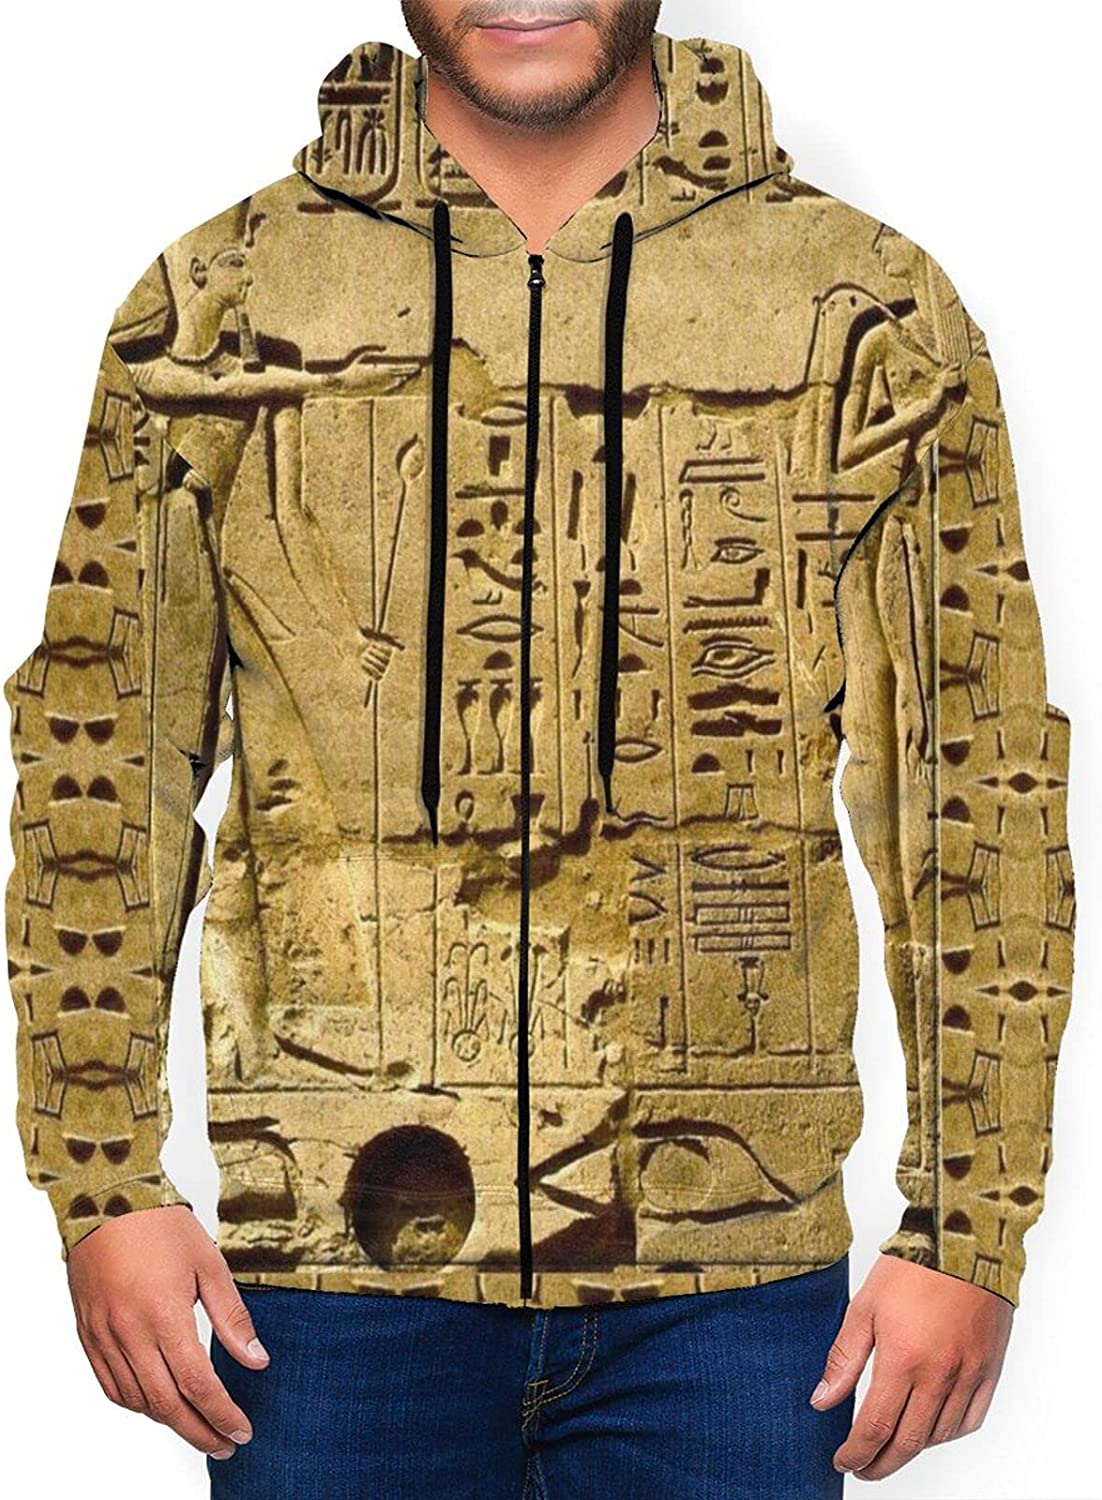 Newwo Egyptian Drawing Mens Full-Zip Ranking TOP13 wi Sweatshirt Jacket Courier shipping free shipping Hooded